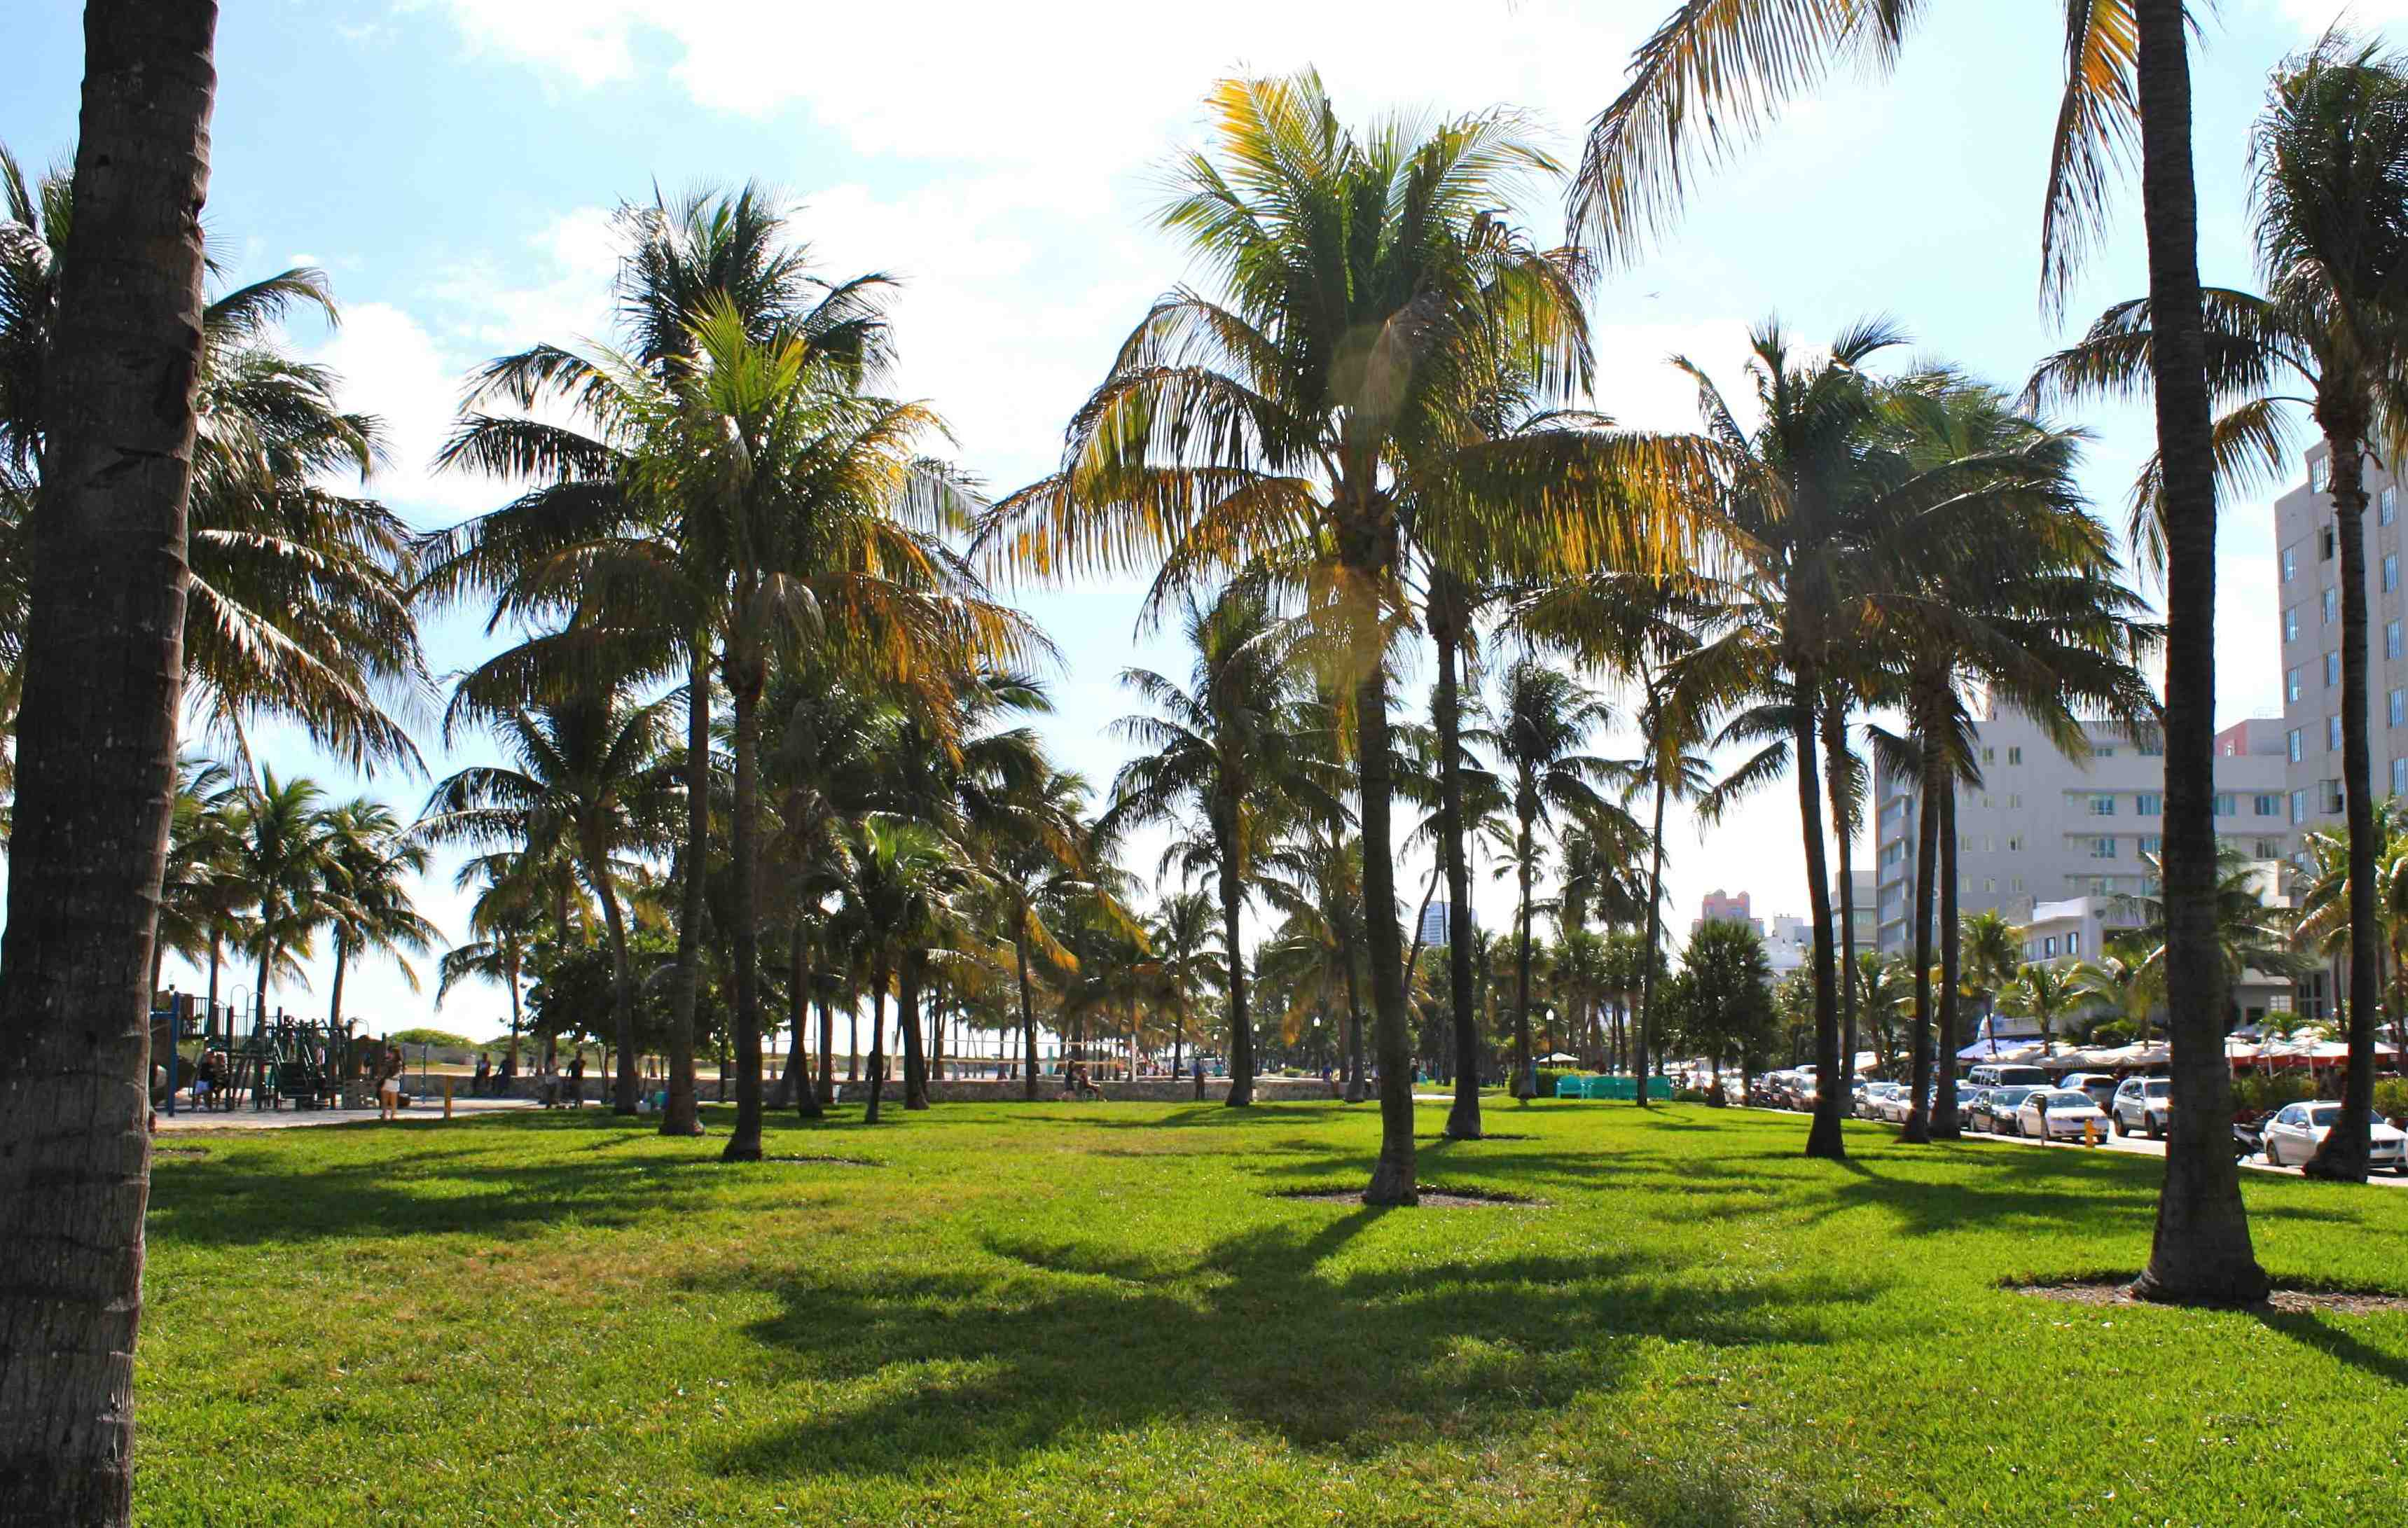 Lummis Park, Florida, Miami Beach, South Beach, Ocean Drive